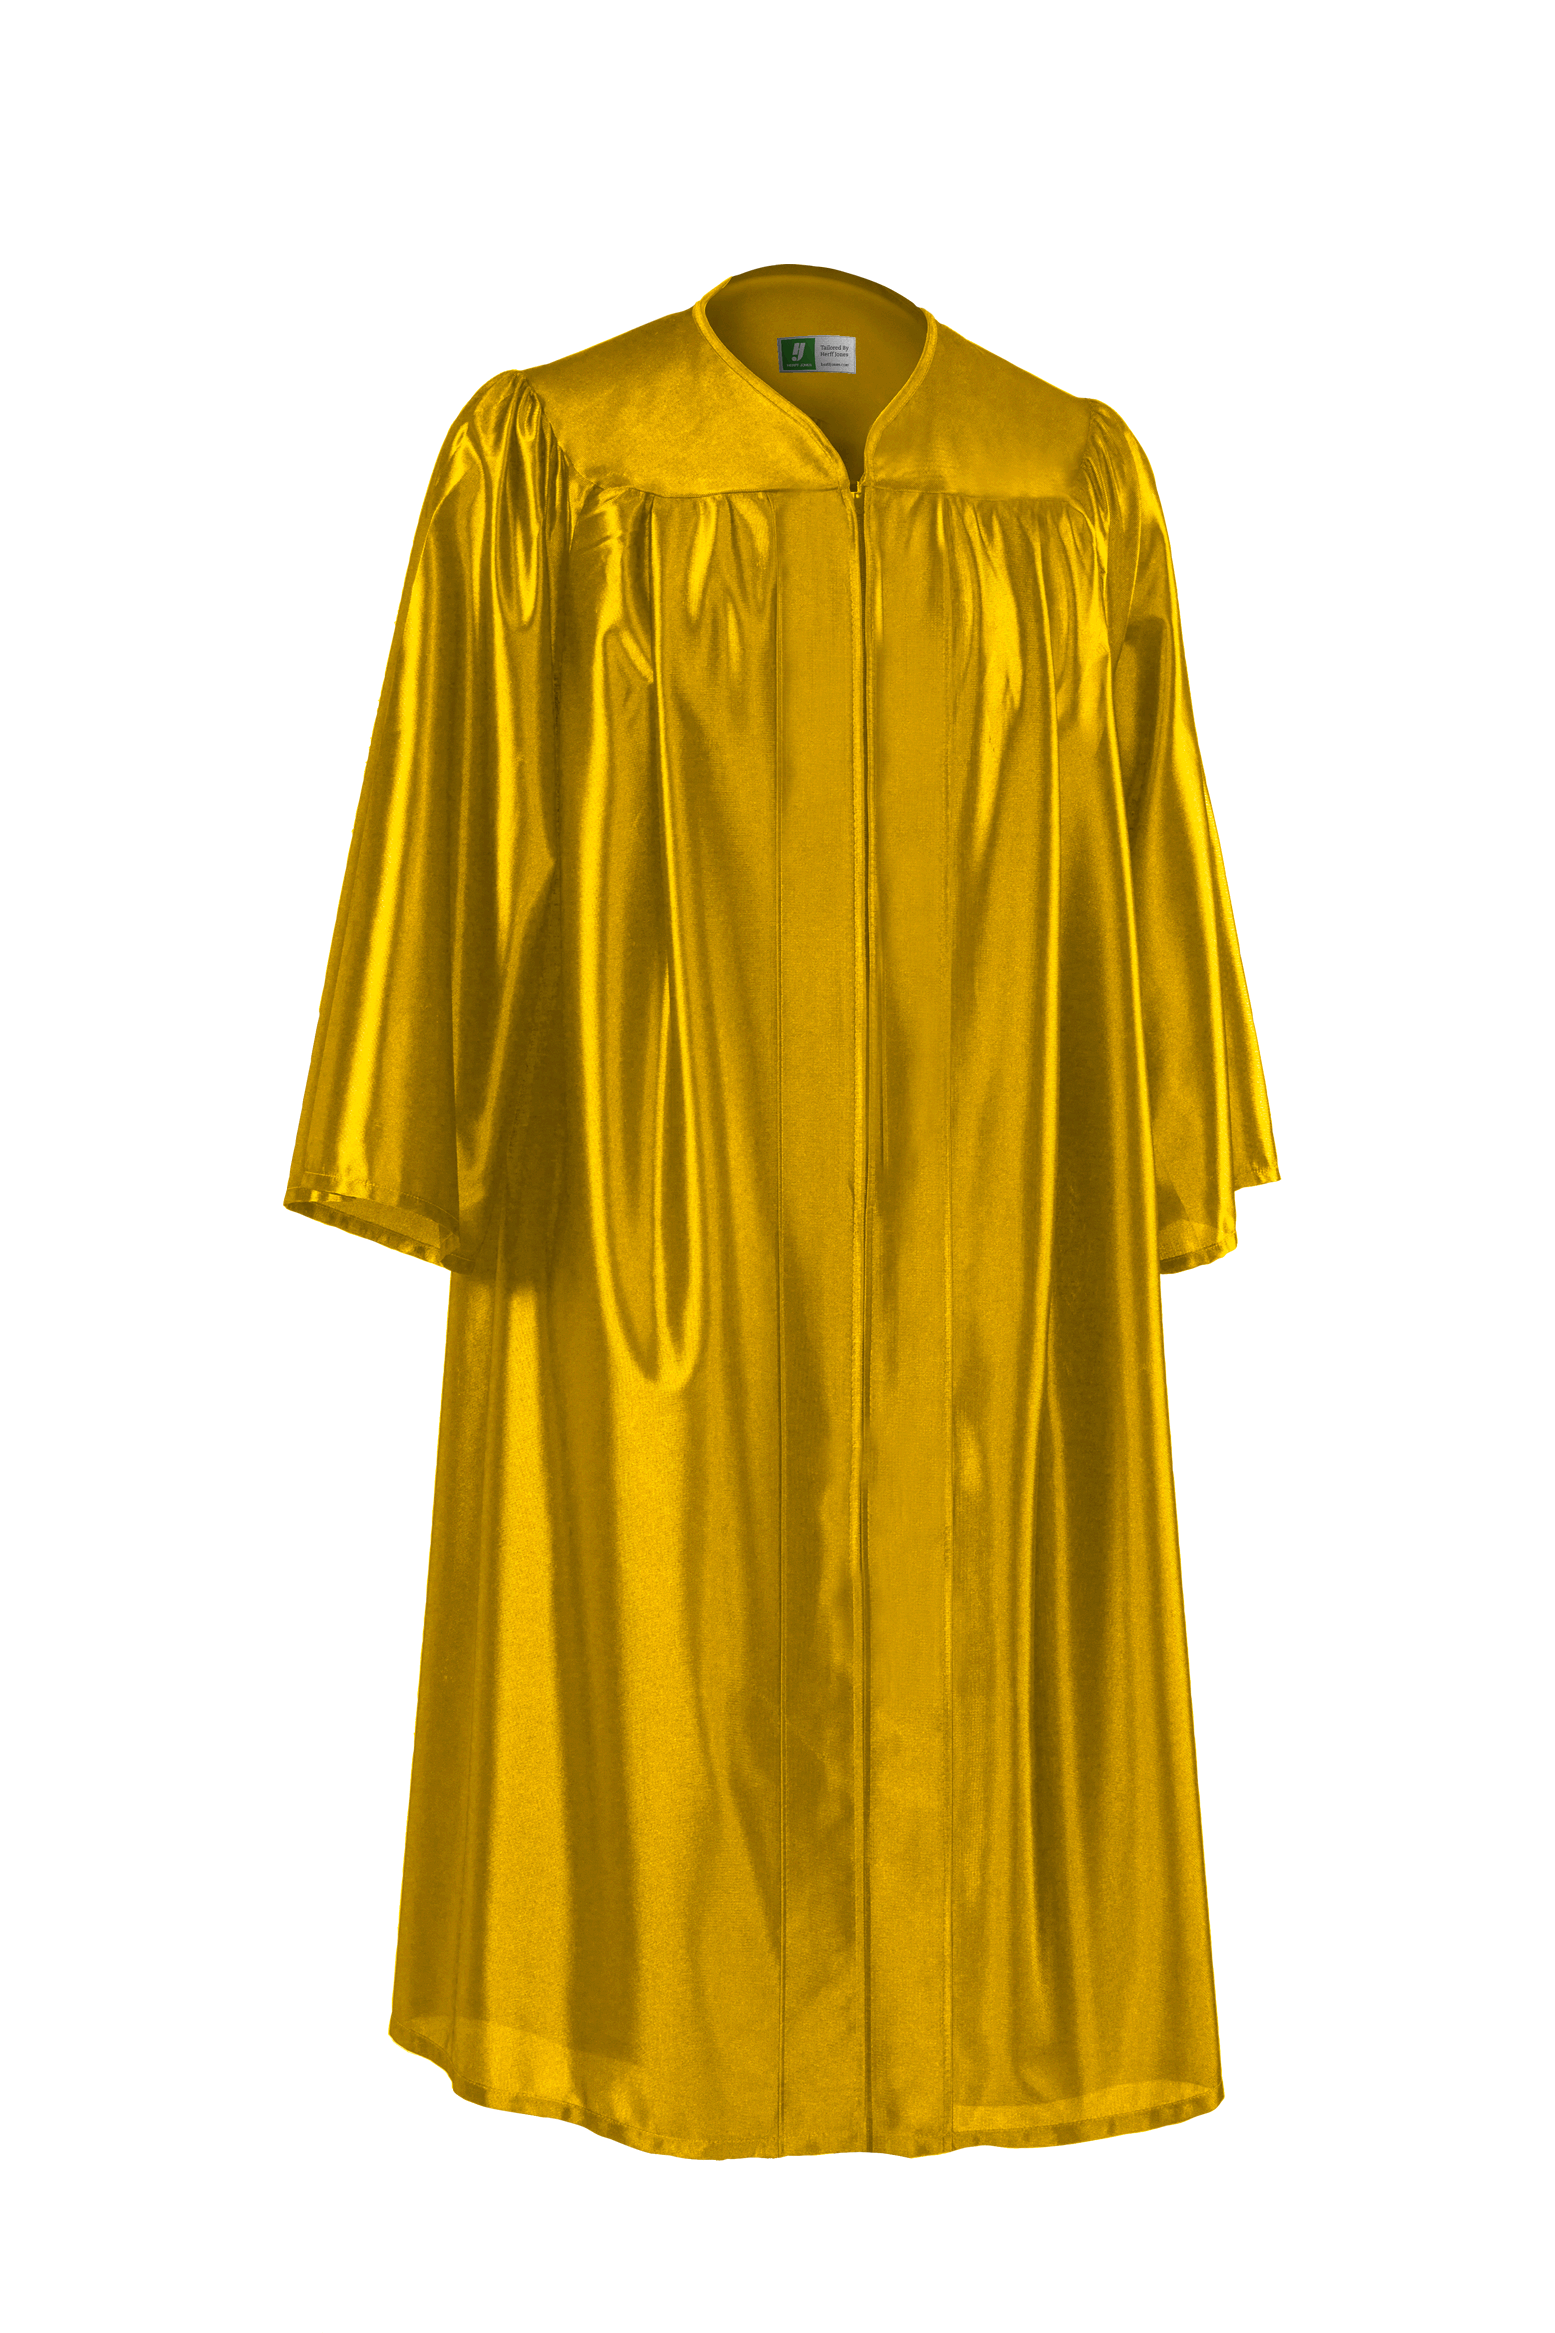 Gold Graduation Gown Academic Robes Graduation Gold Gowns